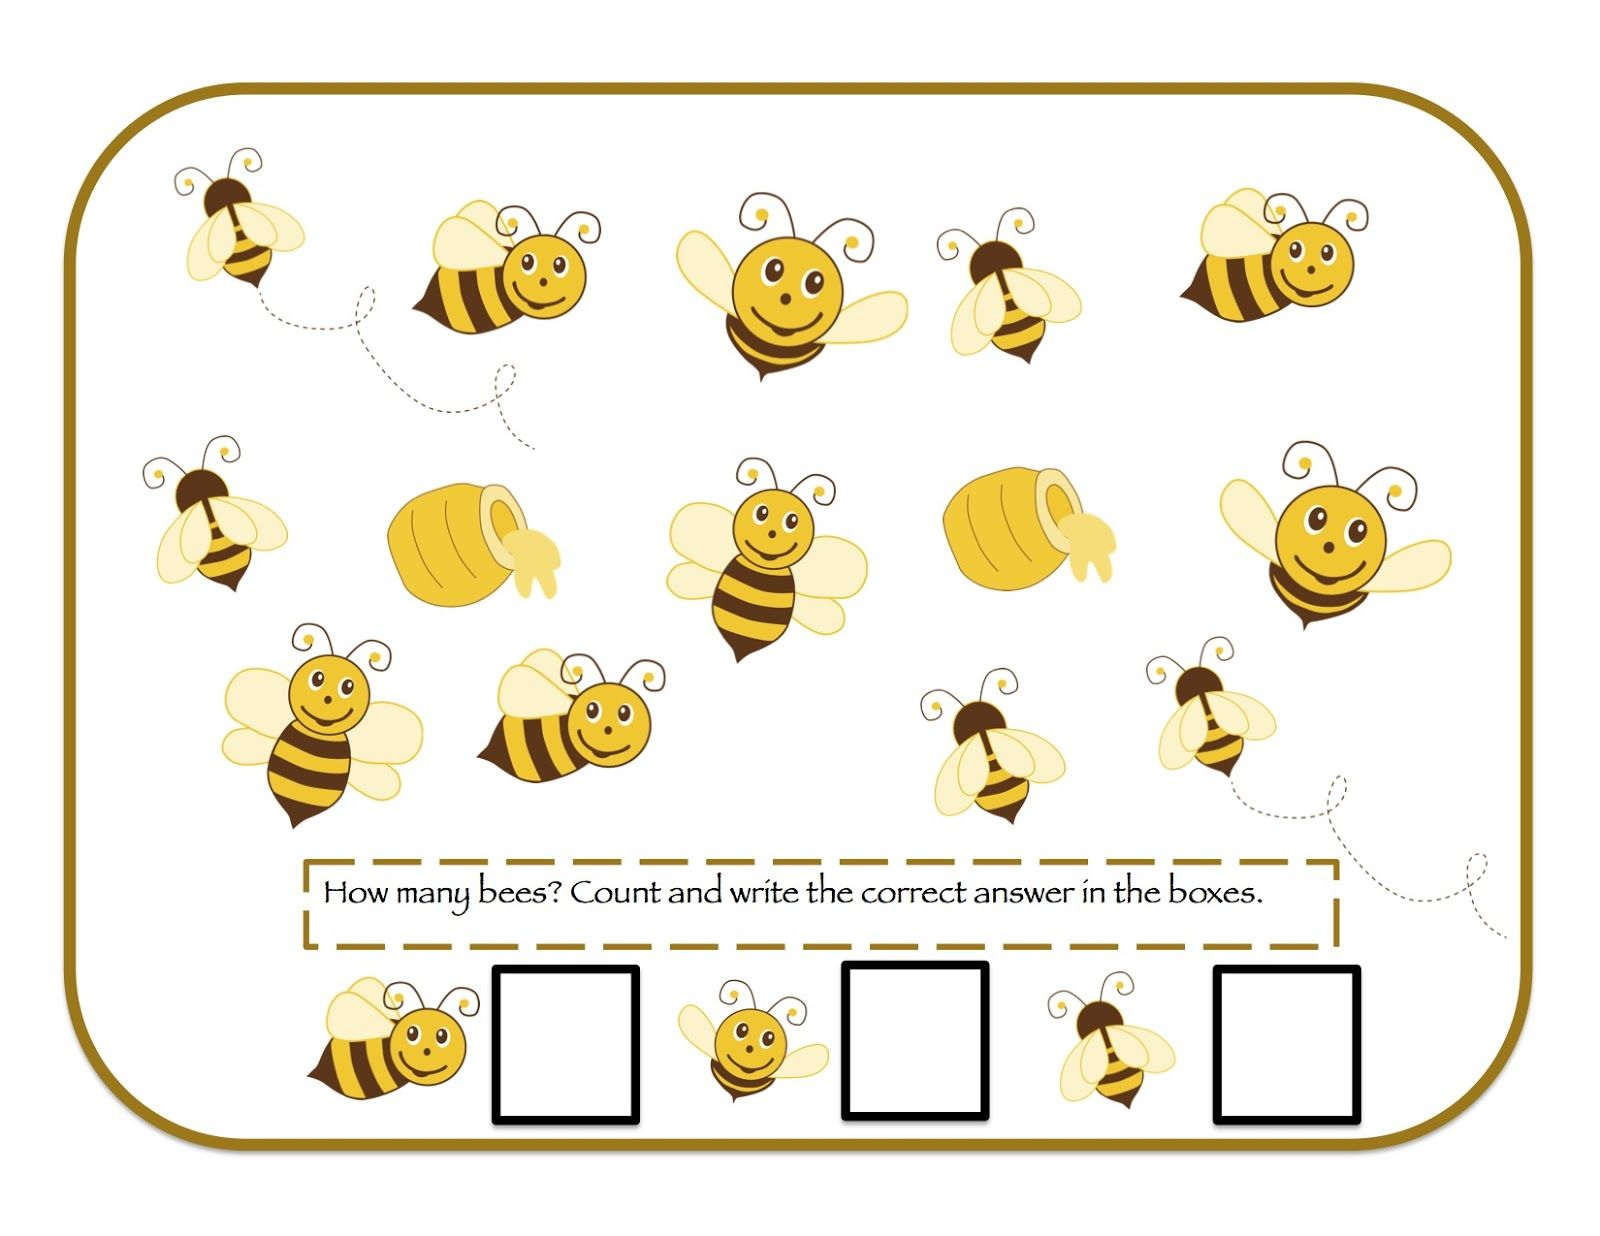 How Many Bees? Preschool/Kinder worksheet